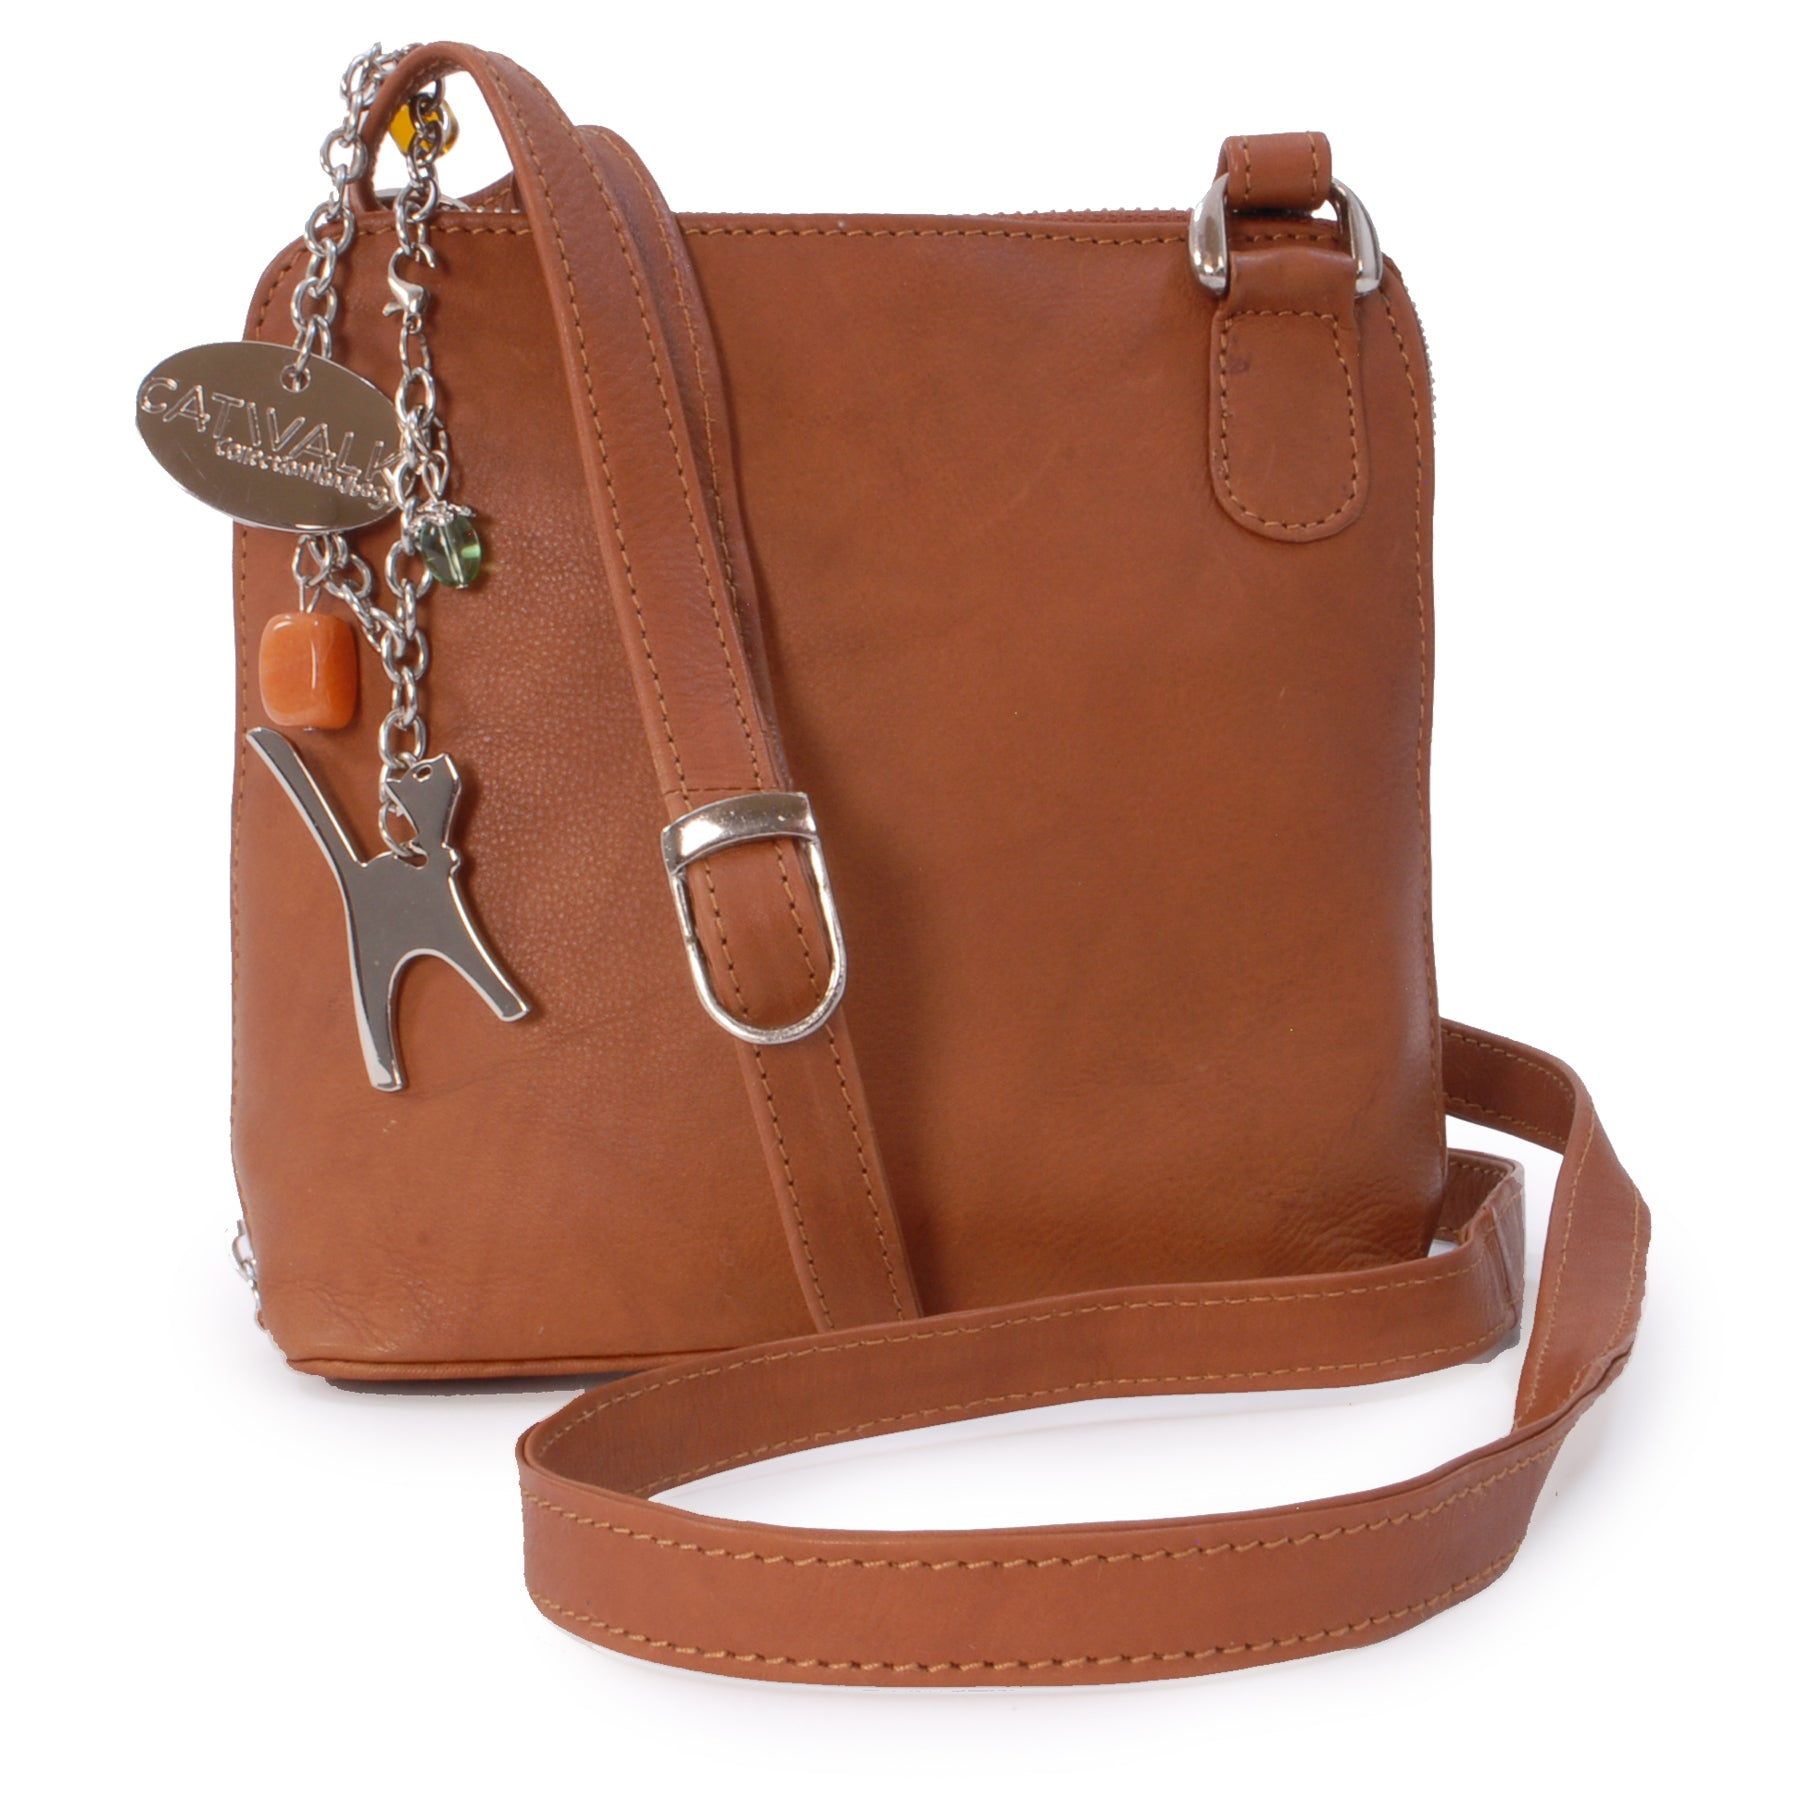 Lena - Small Cross-Body Bag